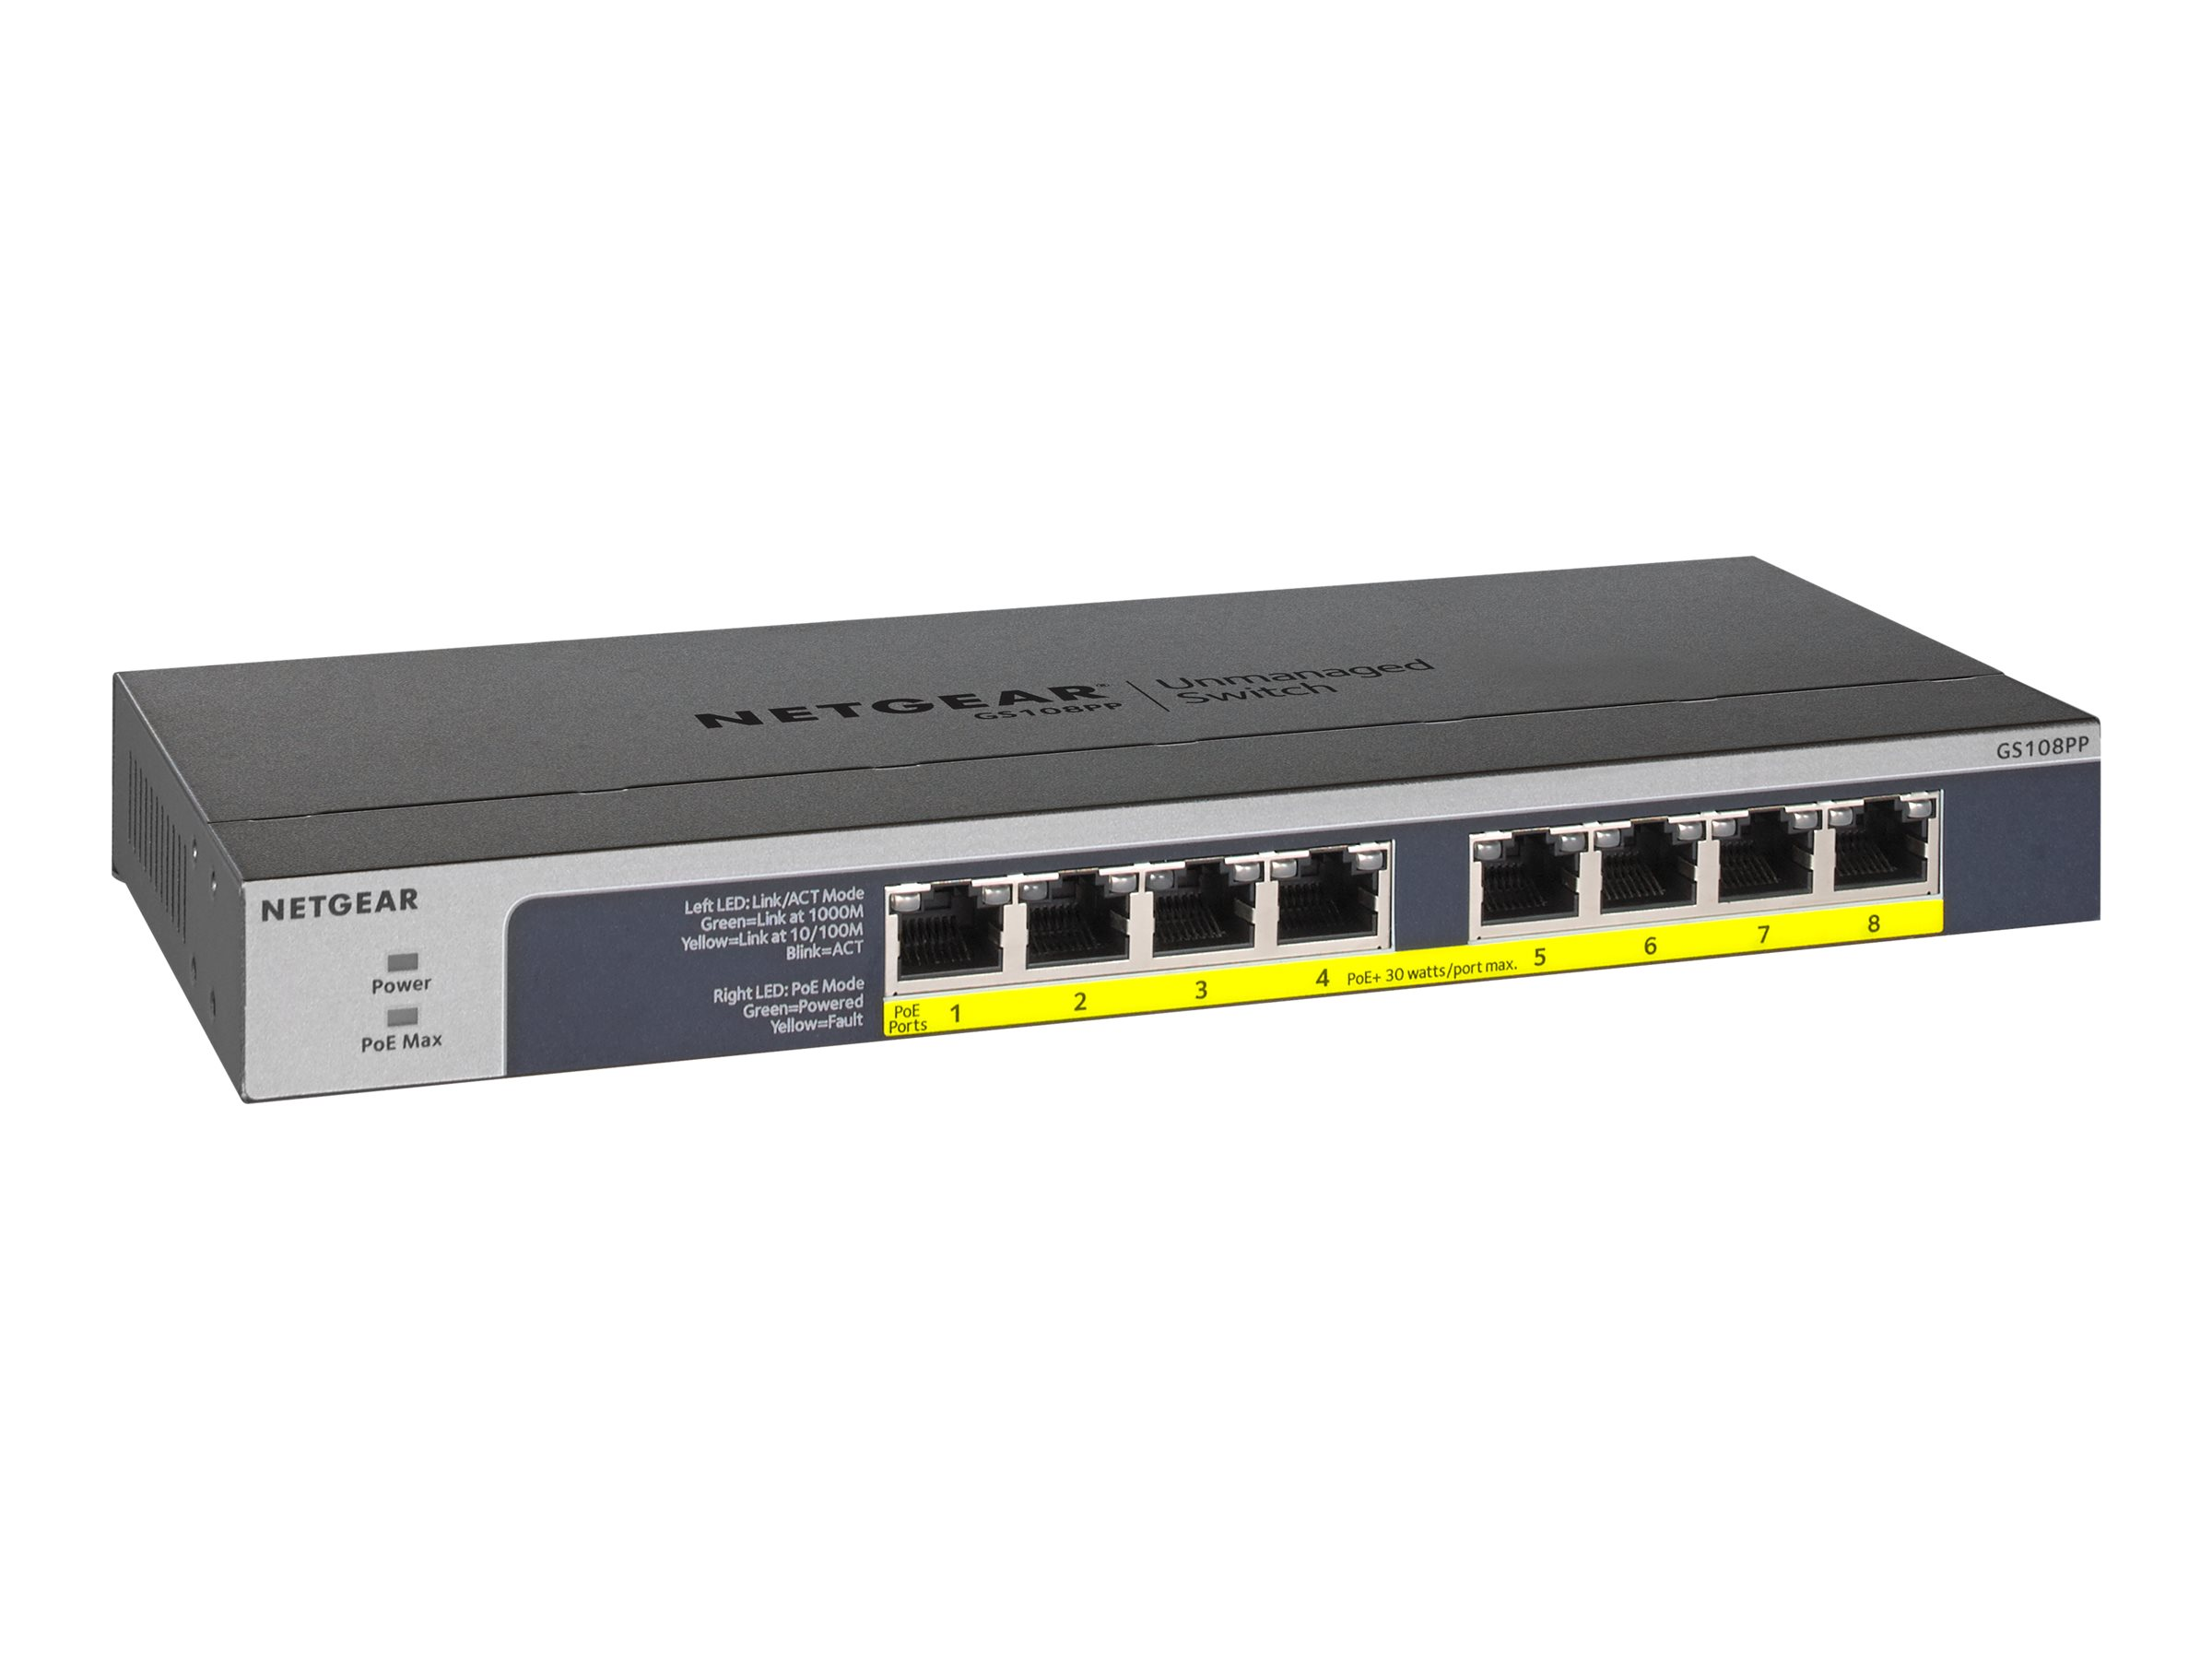 NETGEAR GS108PP - switch - 8 ports - rack-mountable